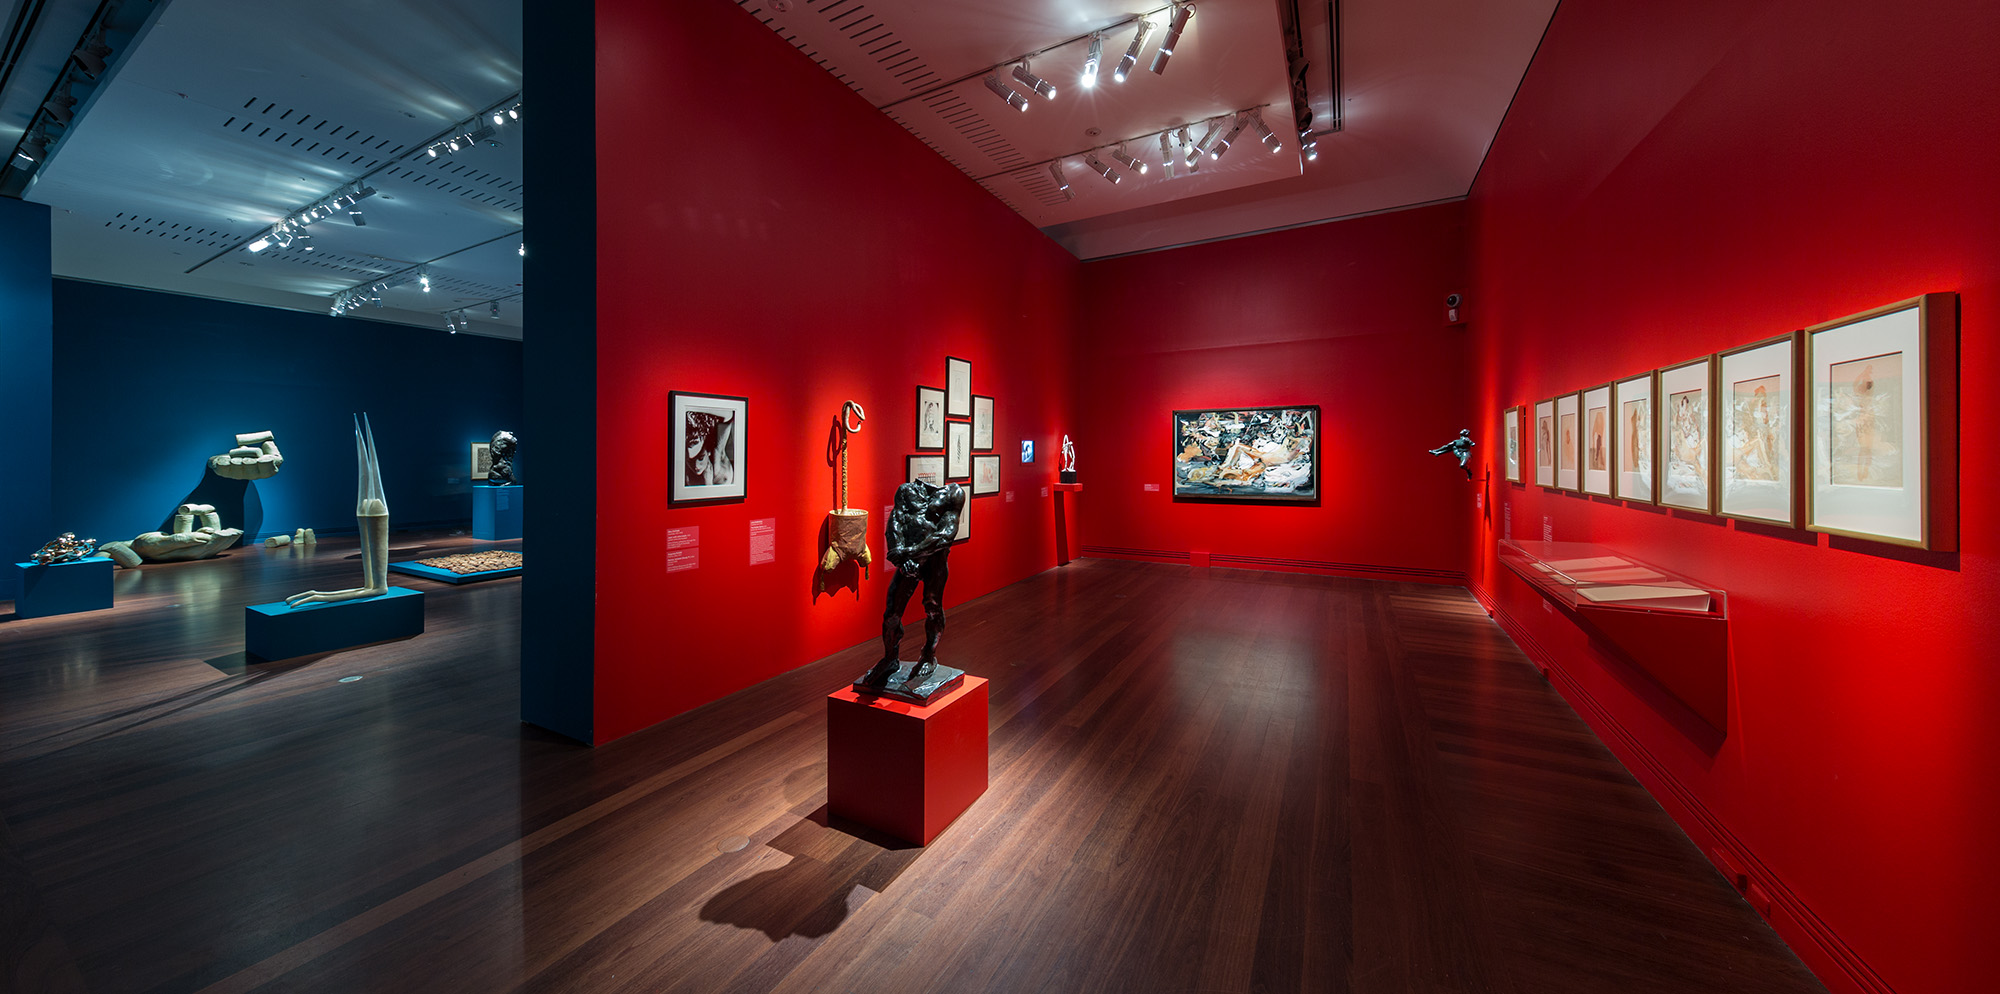 Installation view  Versus Rodin: bodies across space and time , Art Gallery of South Australia, 2017, viewable:  The fragmented body, The erotic body.